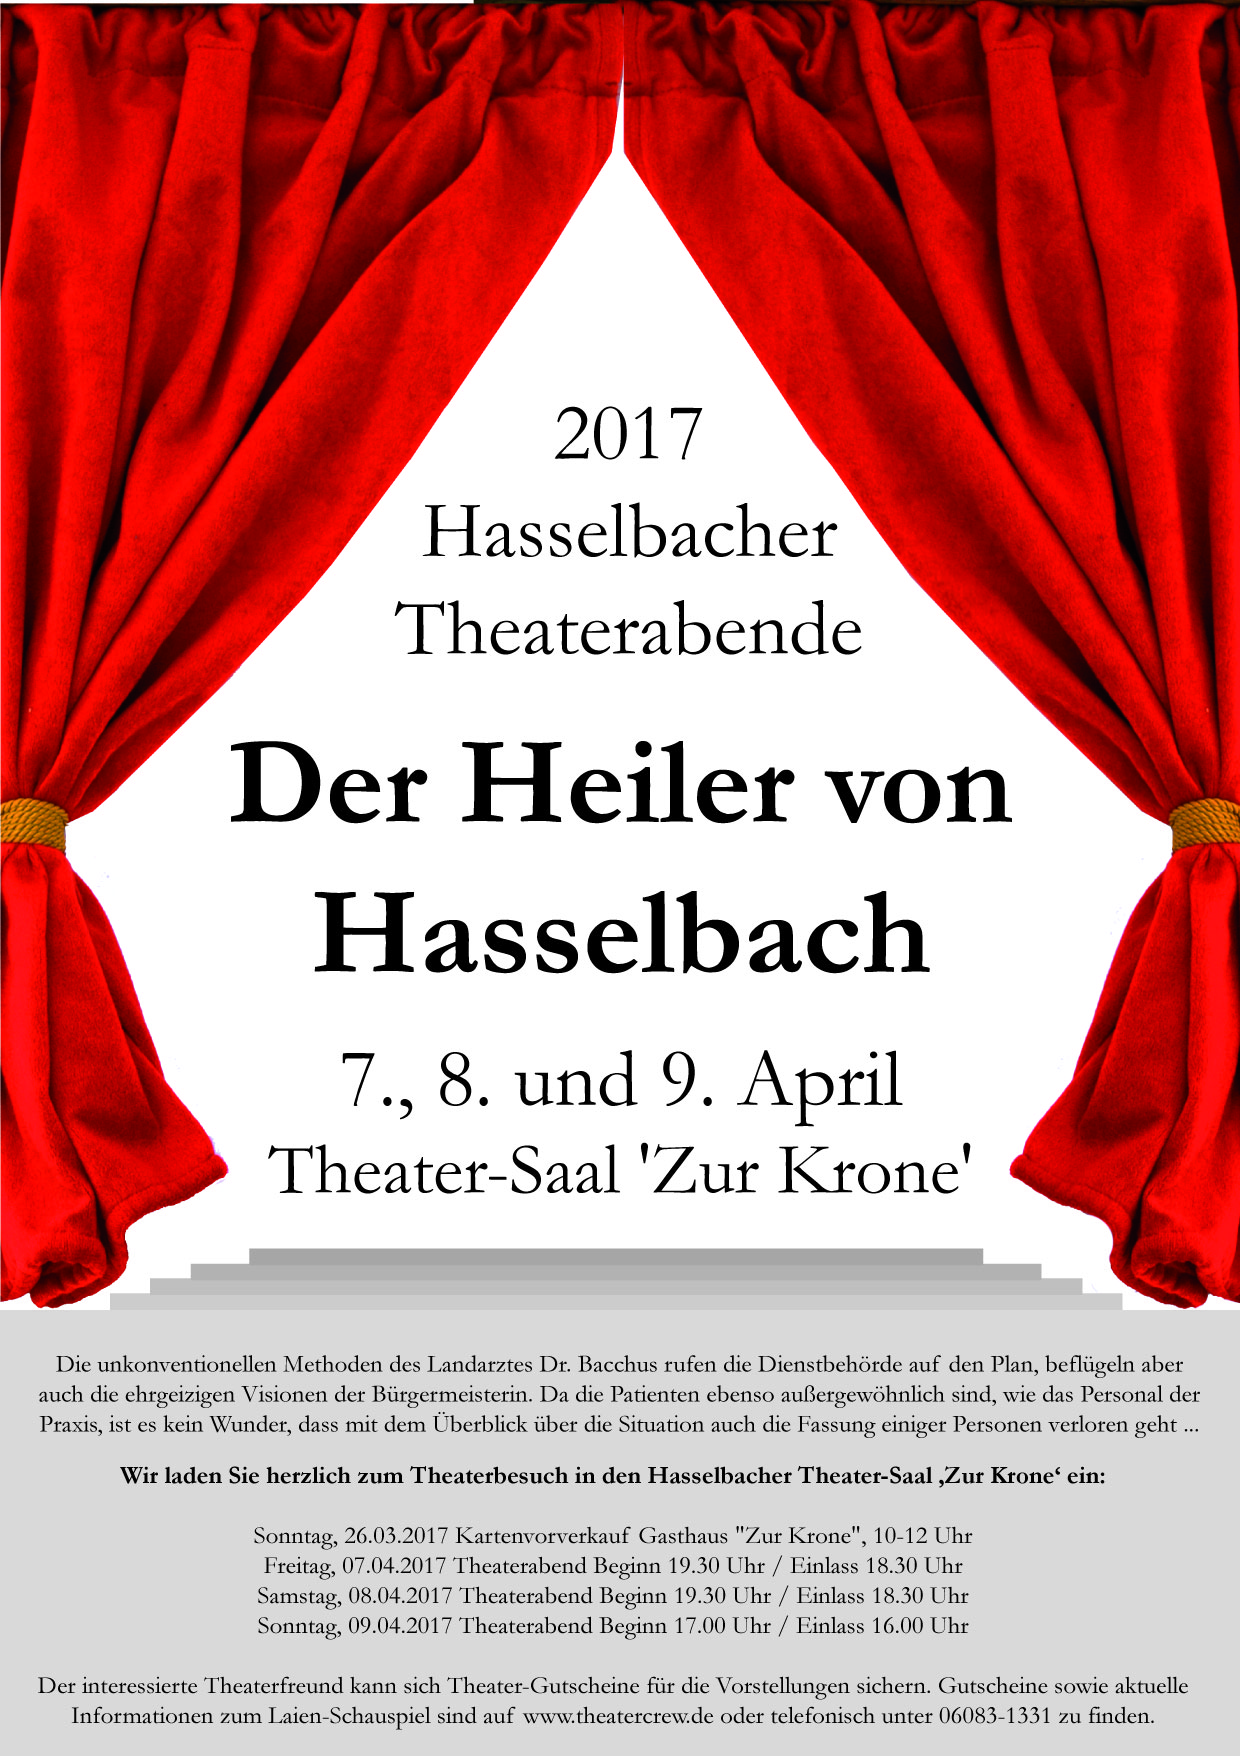 Hasselbacher Theater 2017